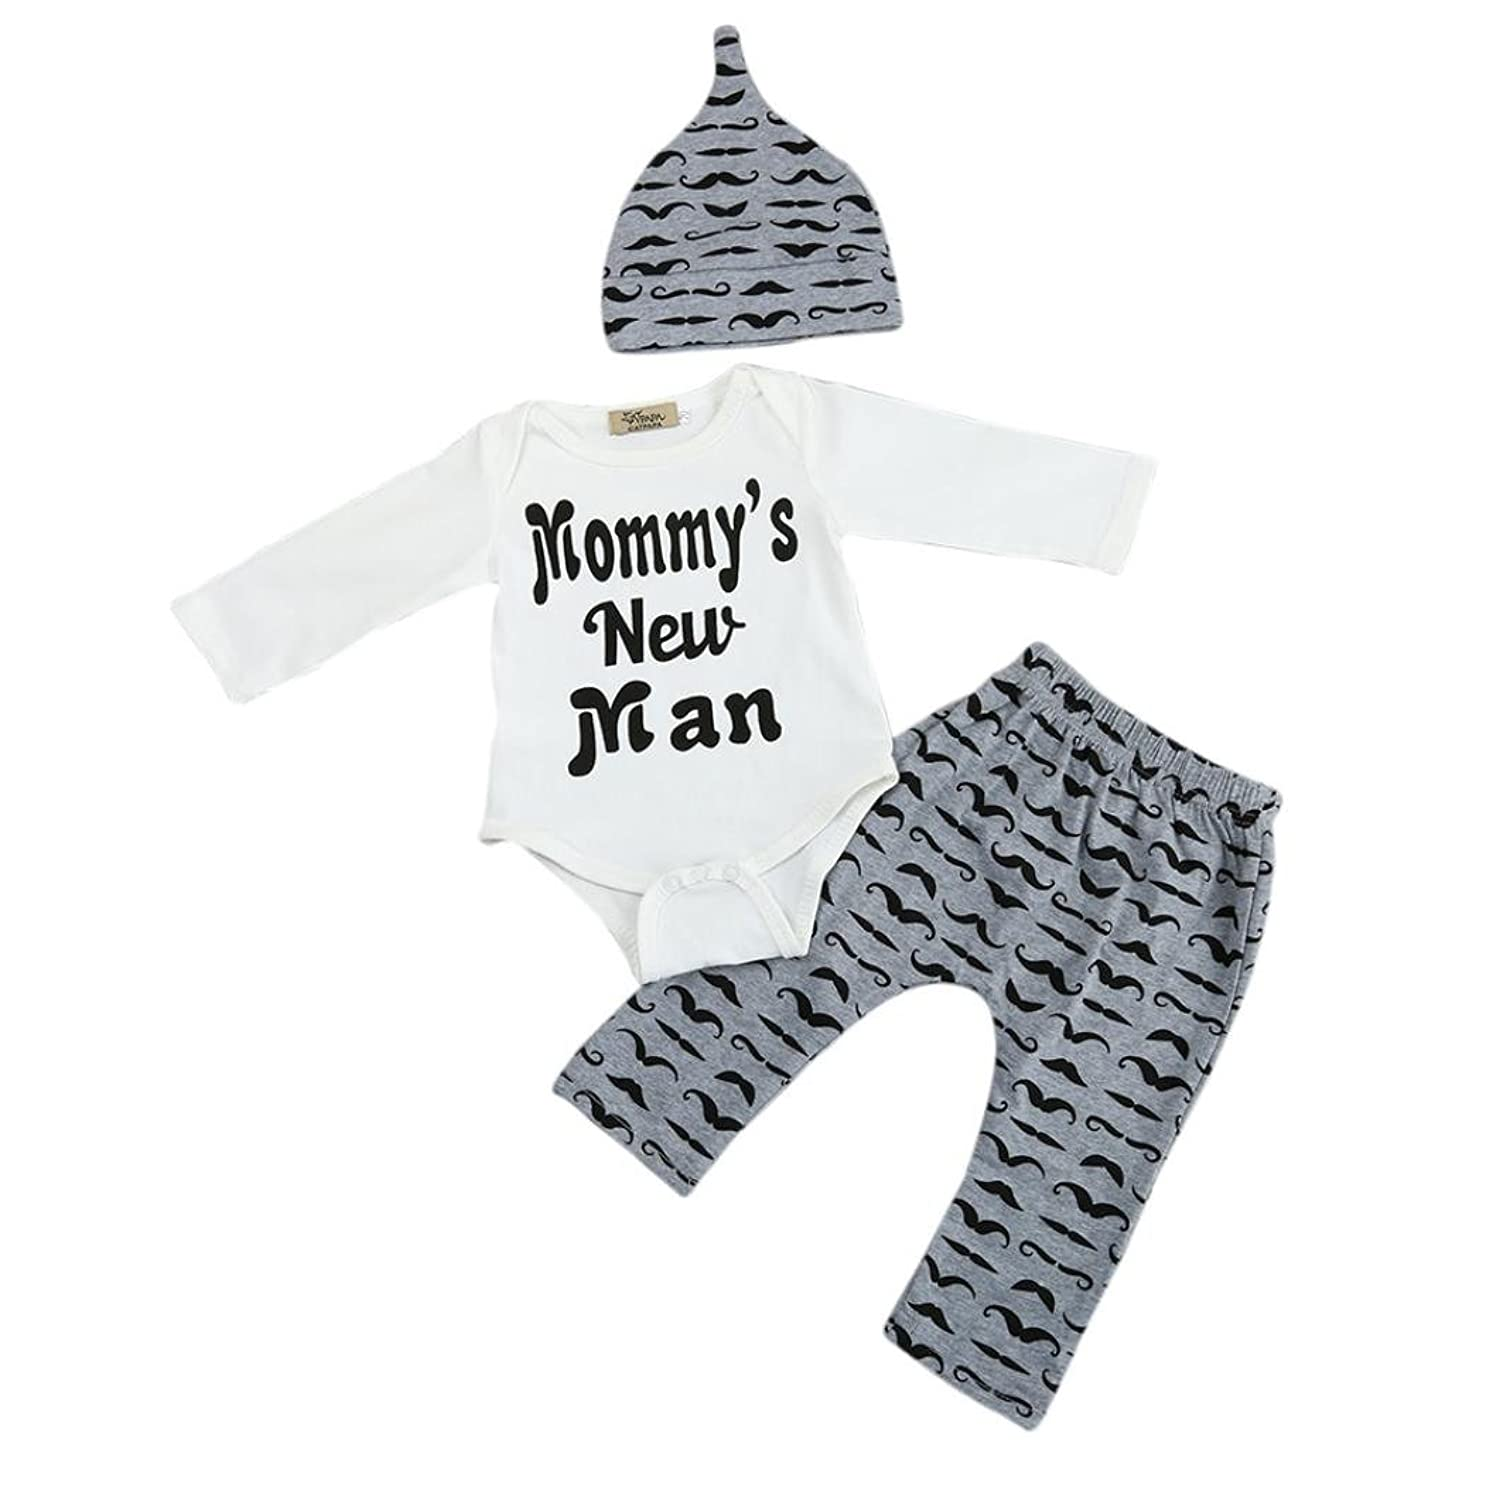 Baby Boys 0 24m Clothing Tops Bodysuits & e Pieces Accessories